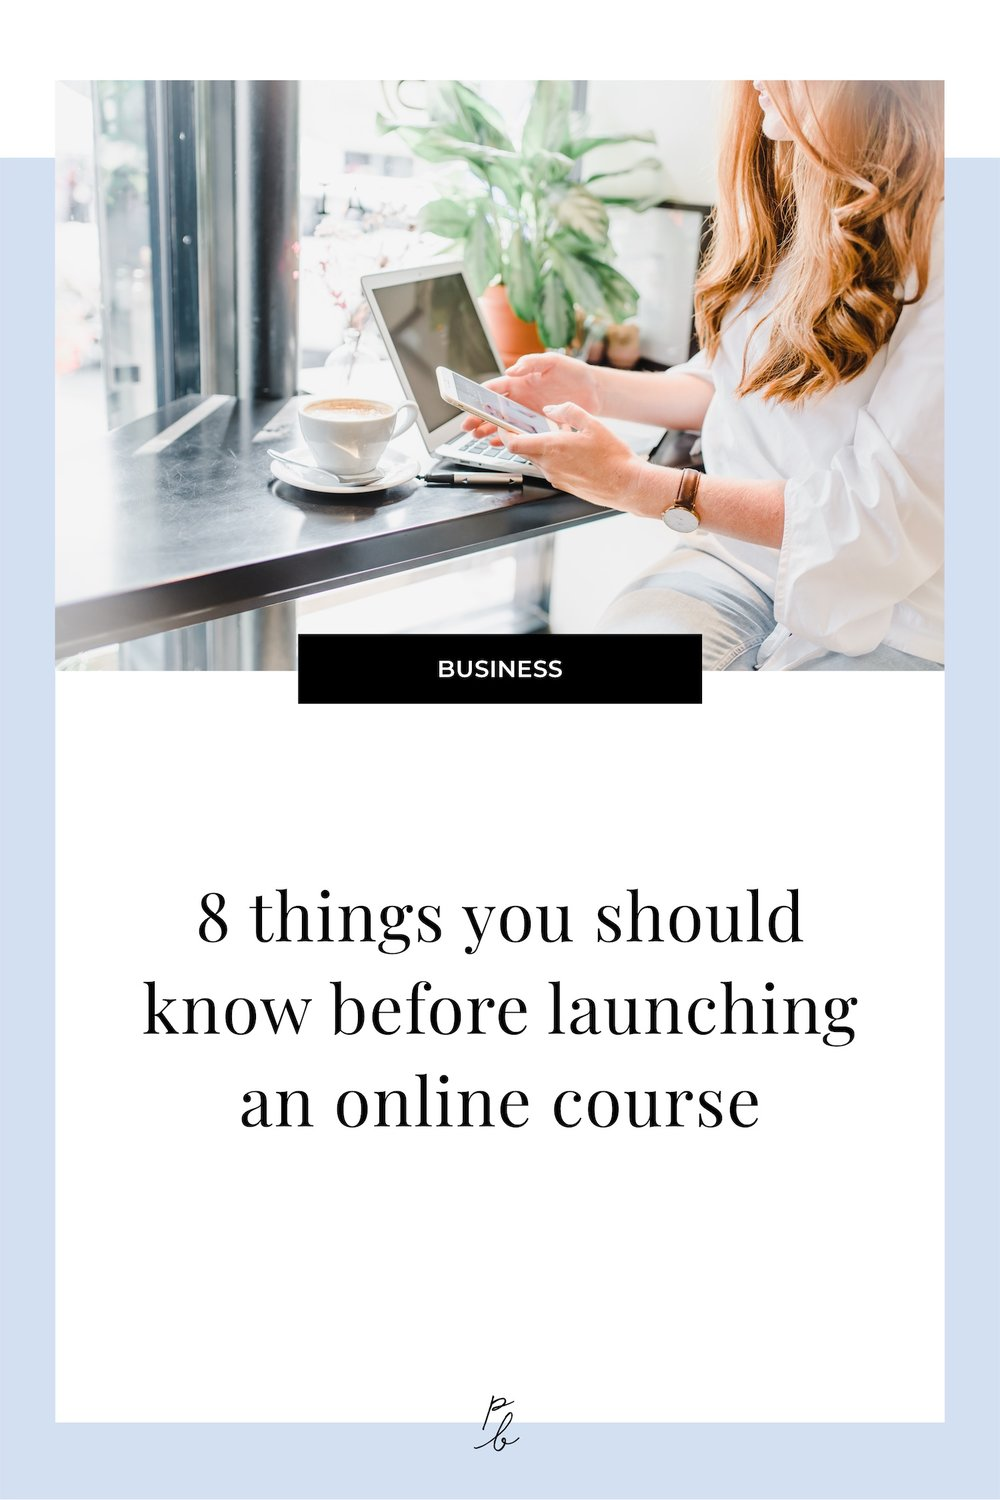 8 things you should know before launching an online course.jpg